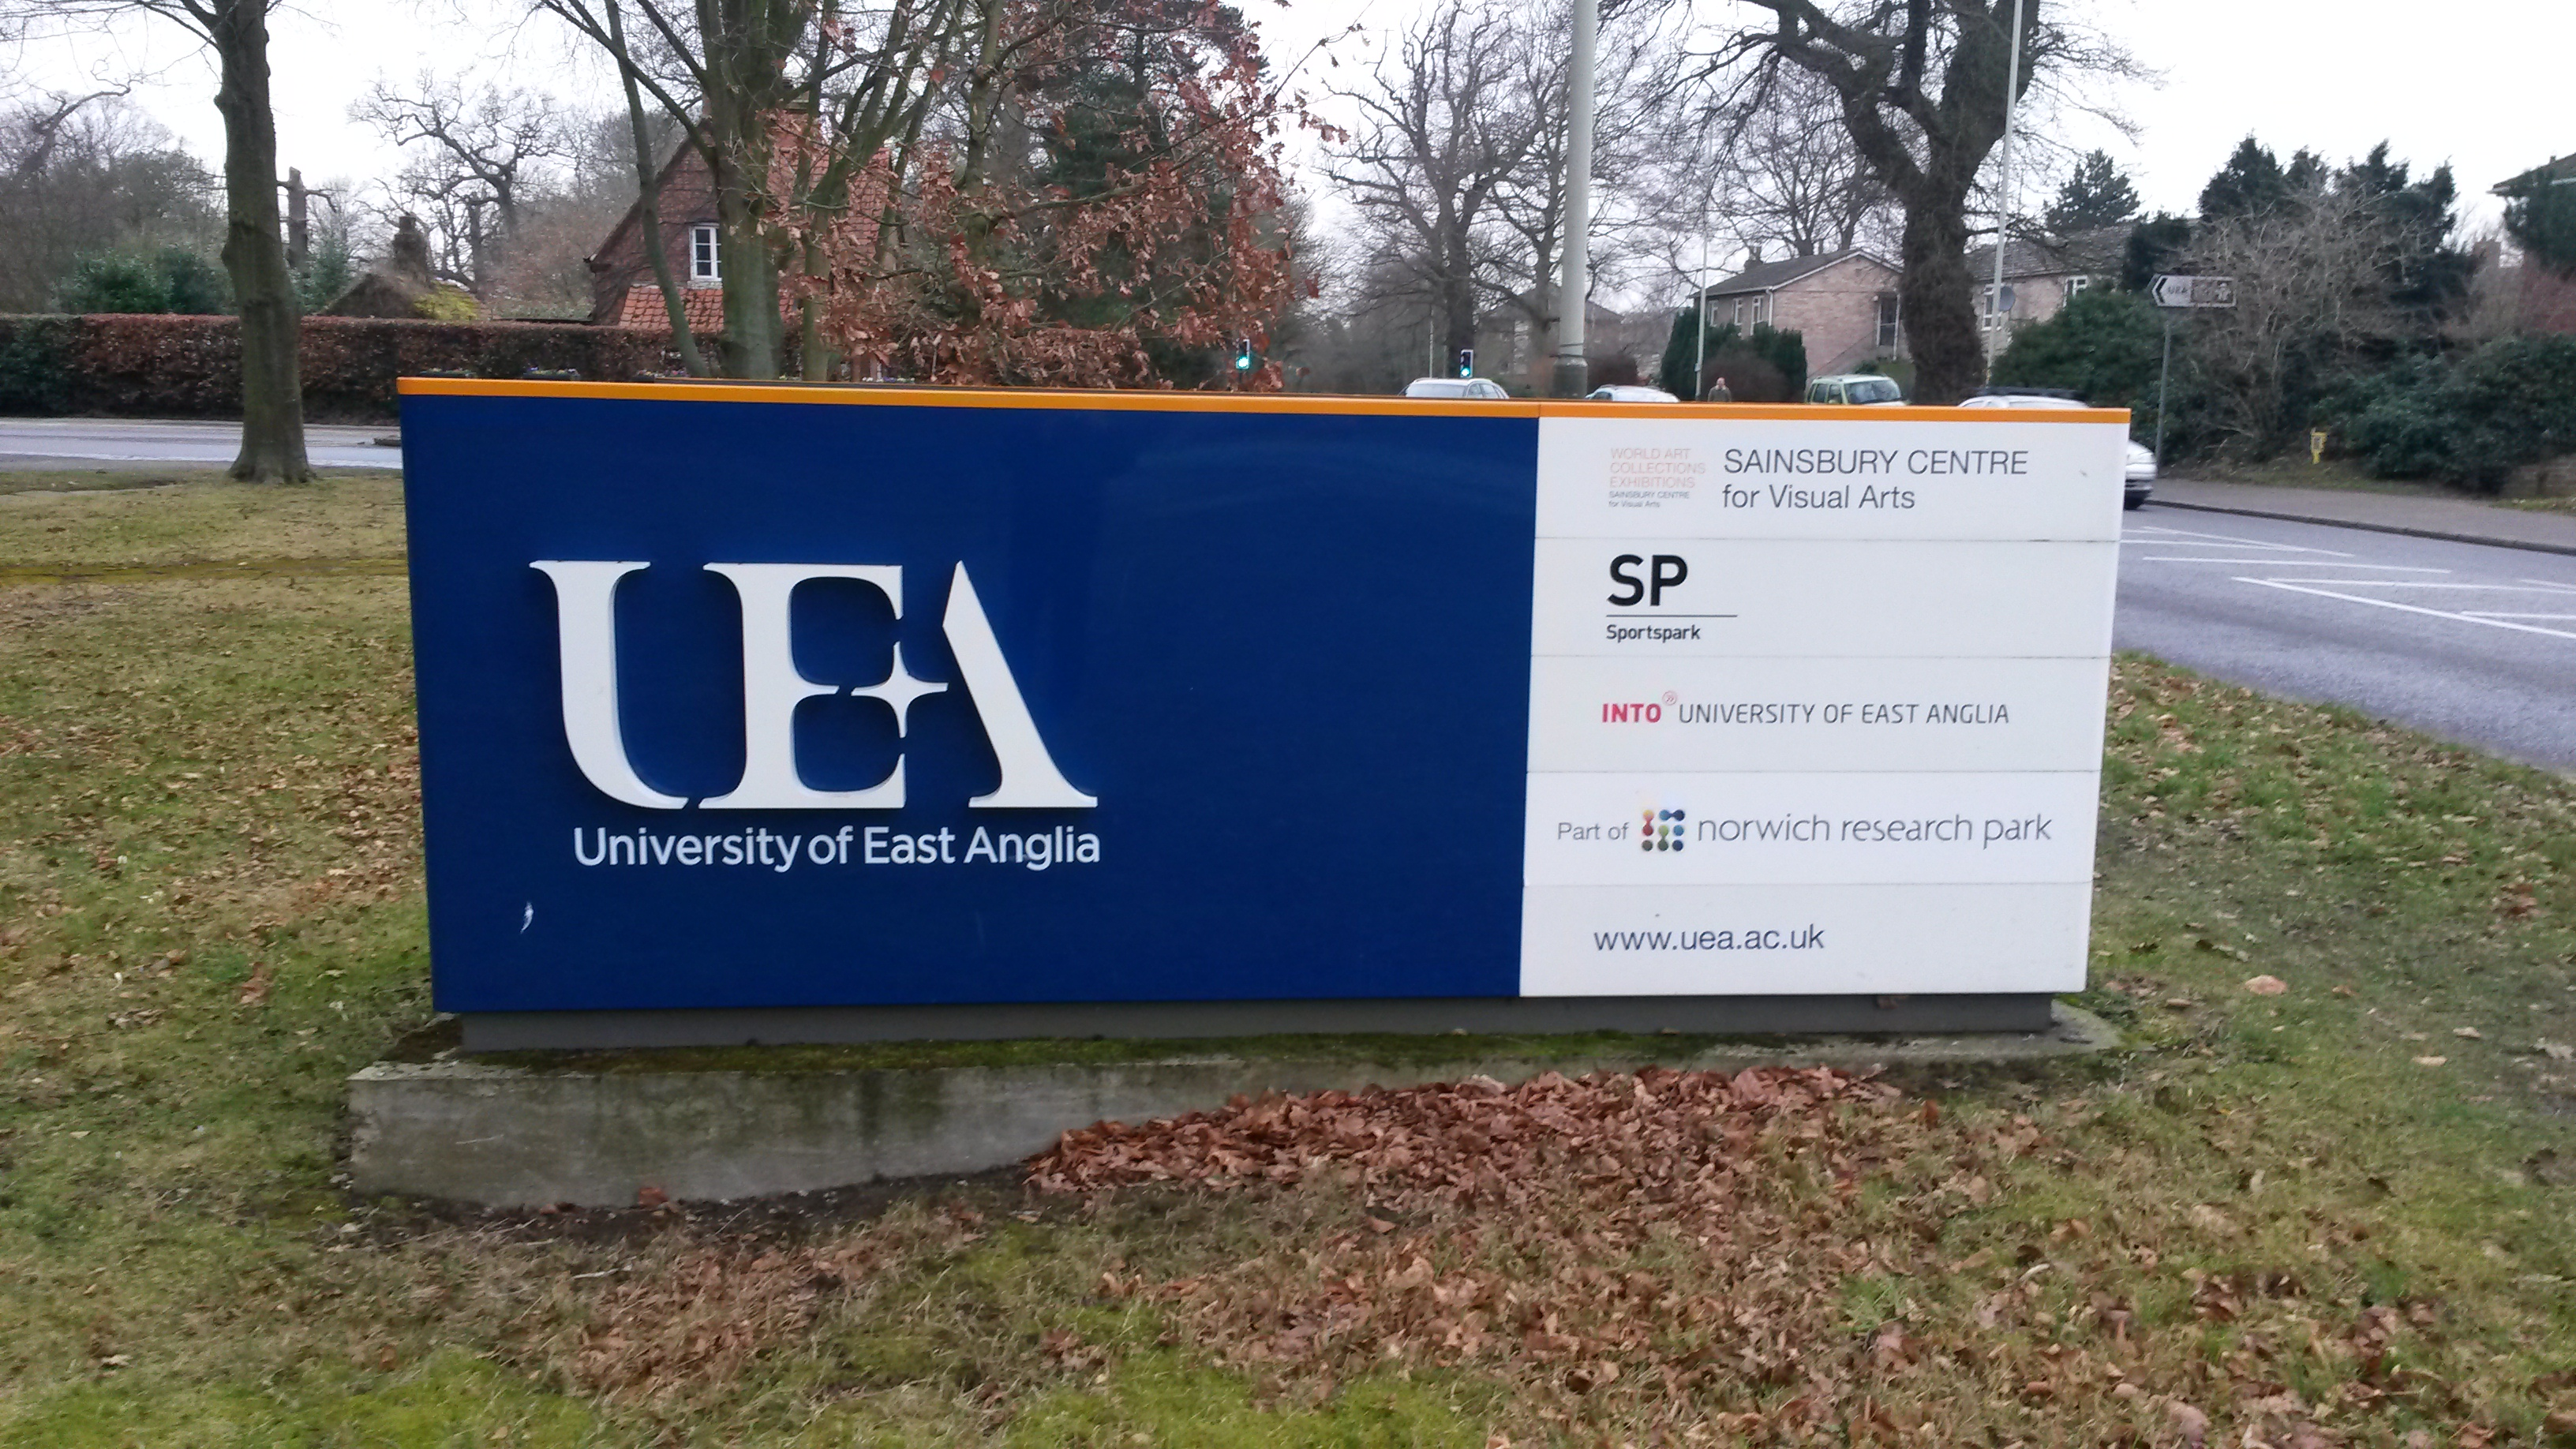 University of East Anglia banner